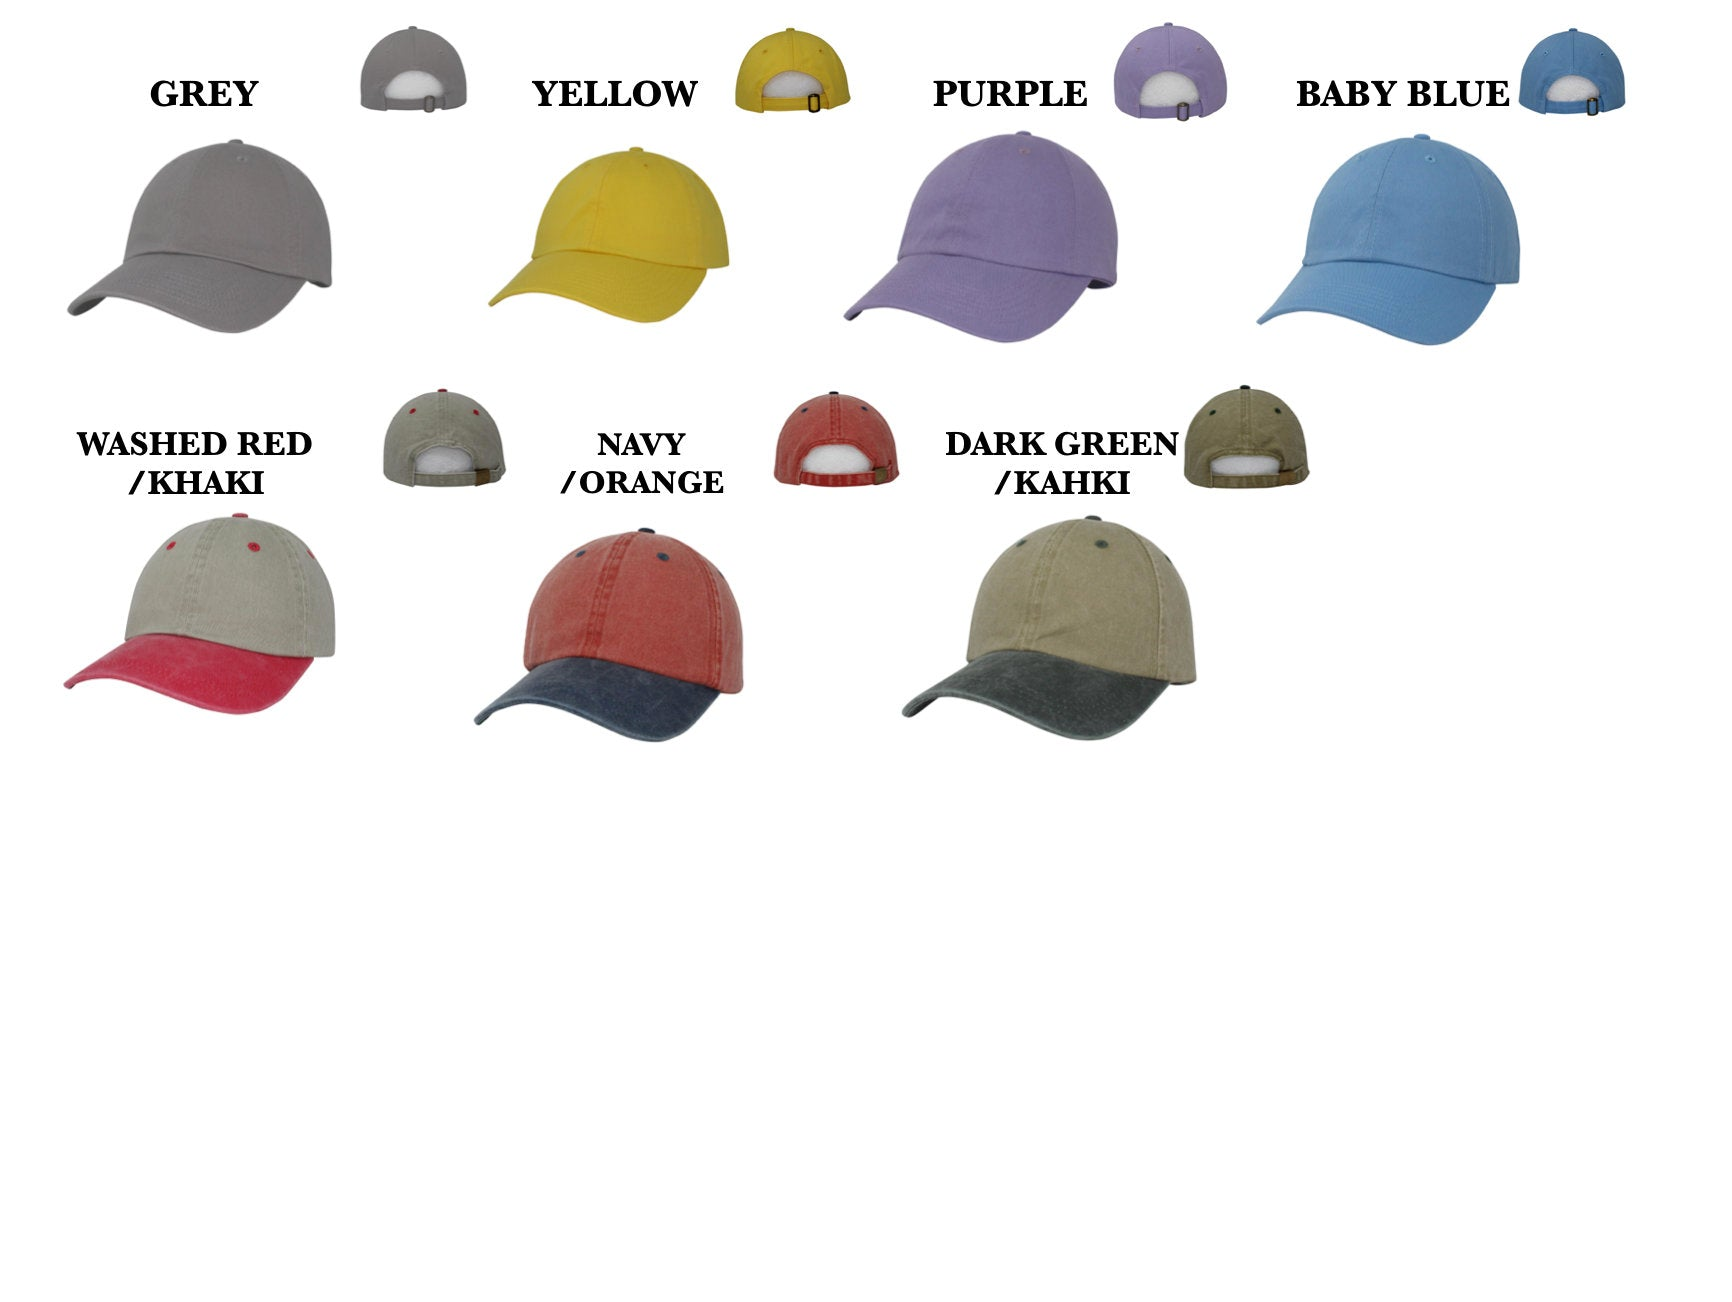 6bf4639a12187 ... Feminist Embroidered Cap Dad cap dad hat embroidered baseball cap  Feminist hat unisex cap